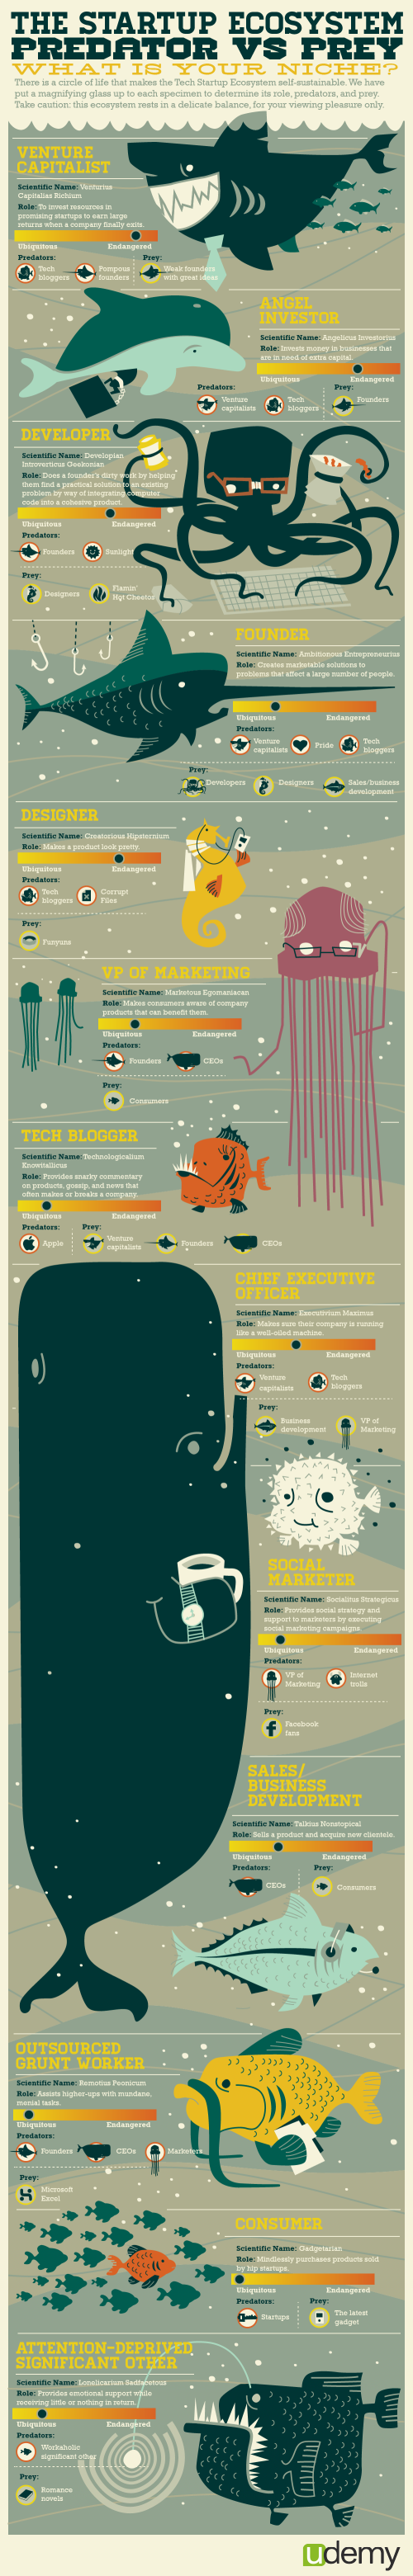 startup-ecosystem-infographic.png